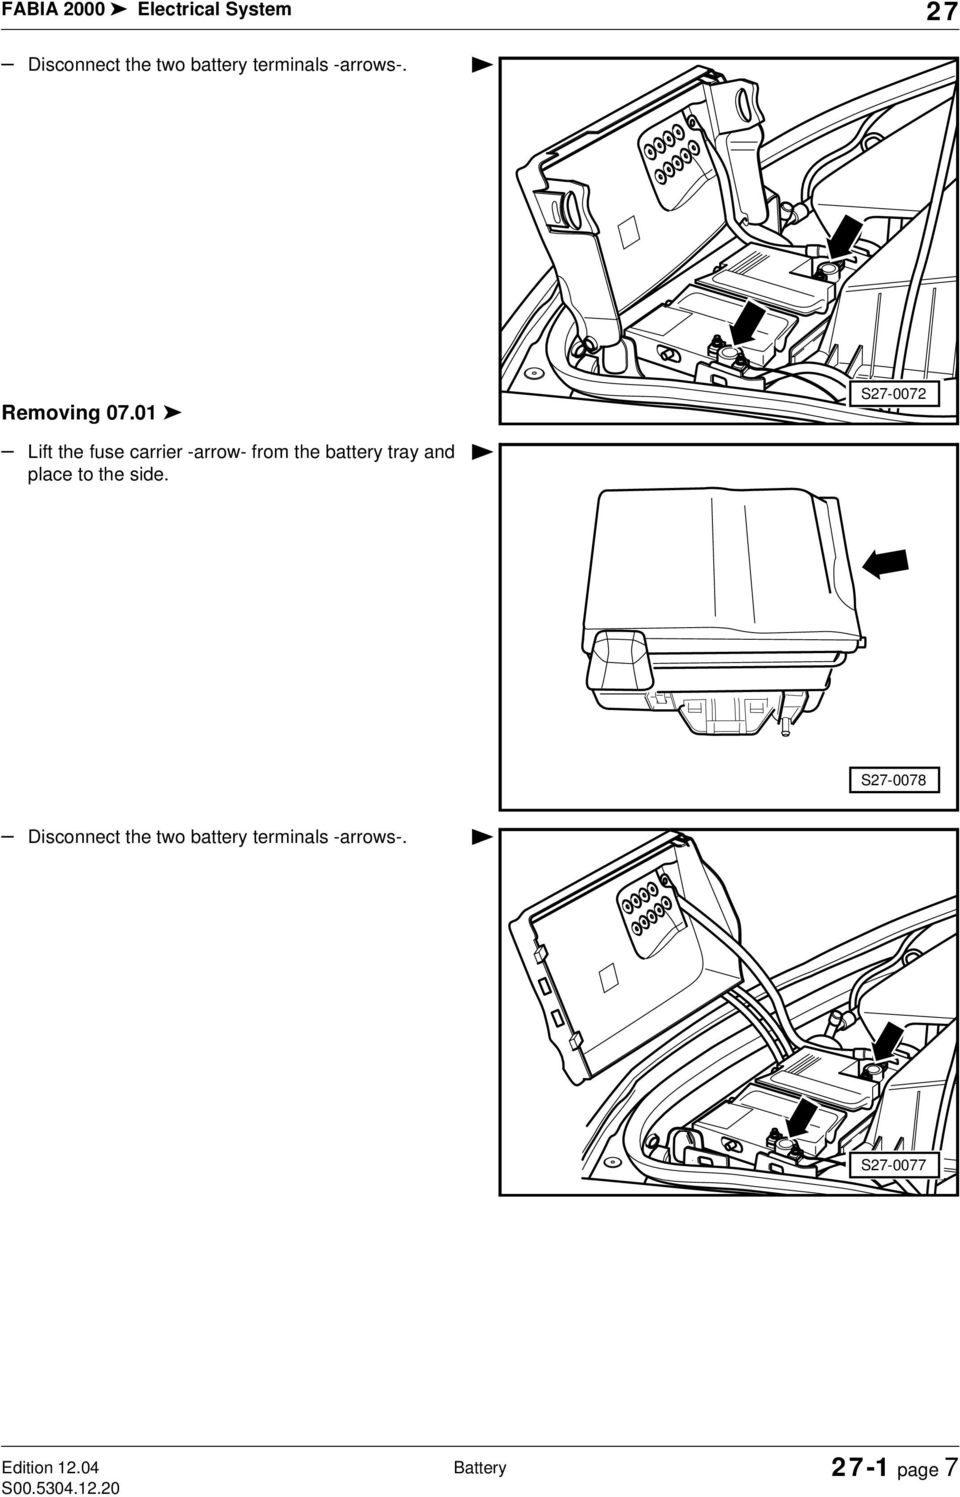 Skoda Fabia 2000 Fuse Box Everything About Wiring Diagram Battery Images Gallery